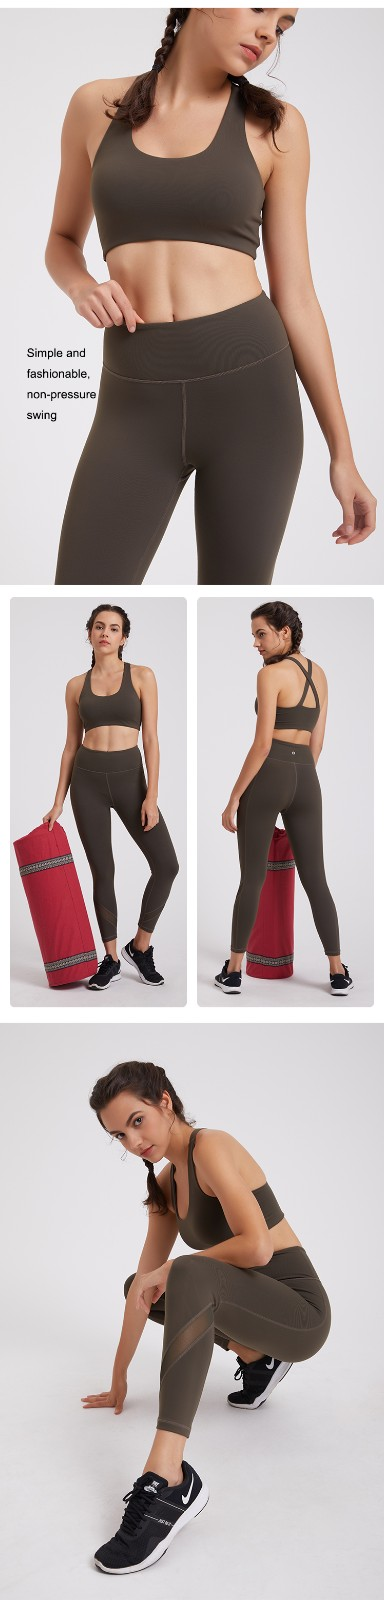 high quality yoga set online marketing for sport-4